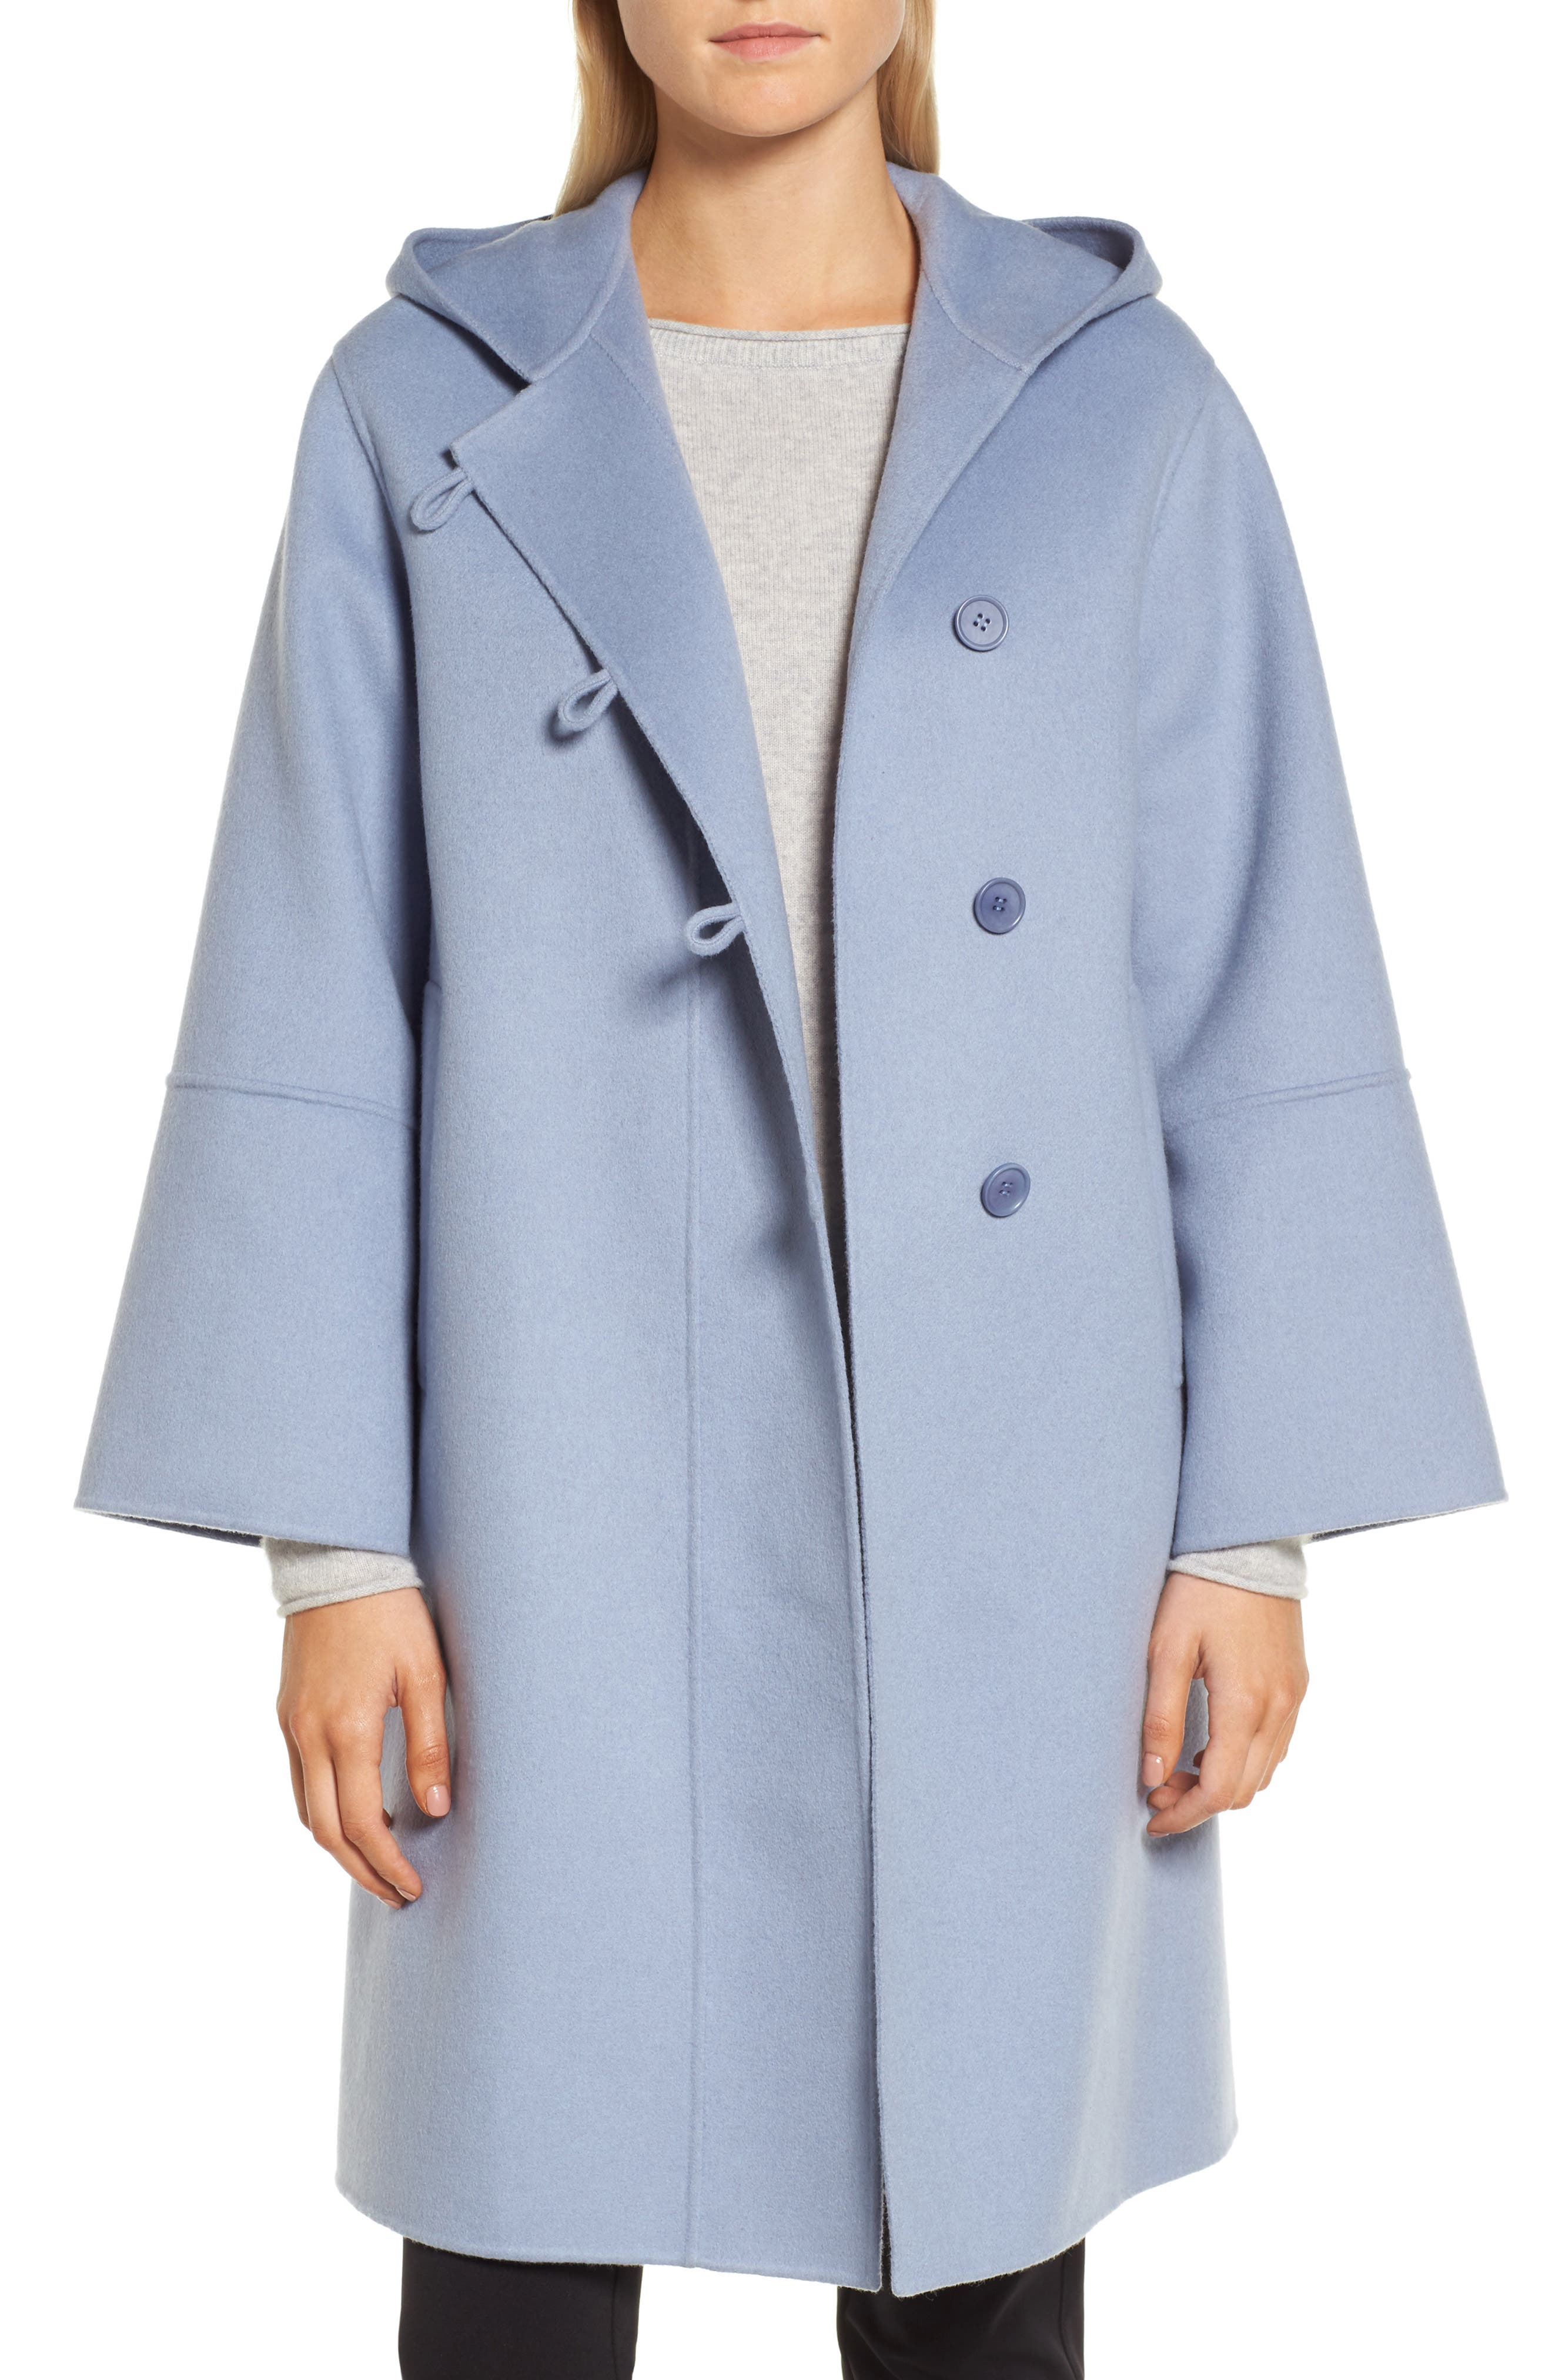 Hooded Wool & Cashmere Coat,                             Main thumbnail 1, color,                             450